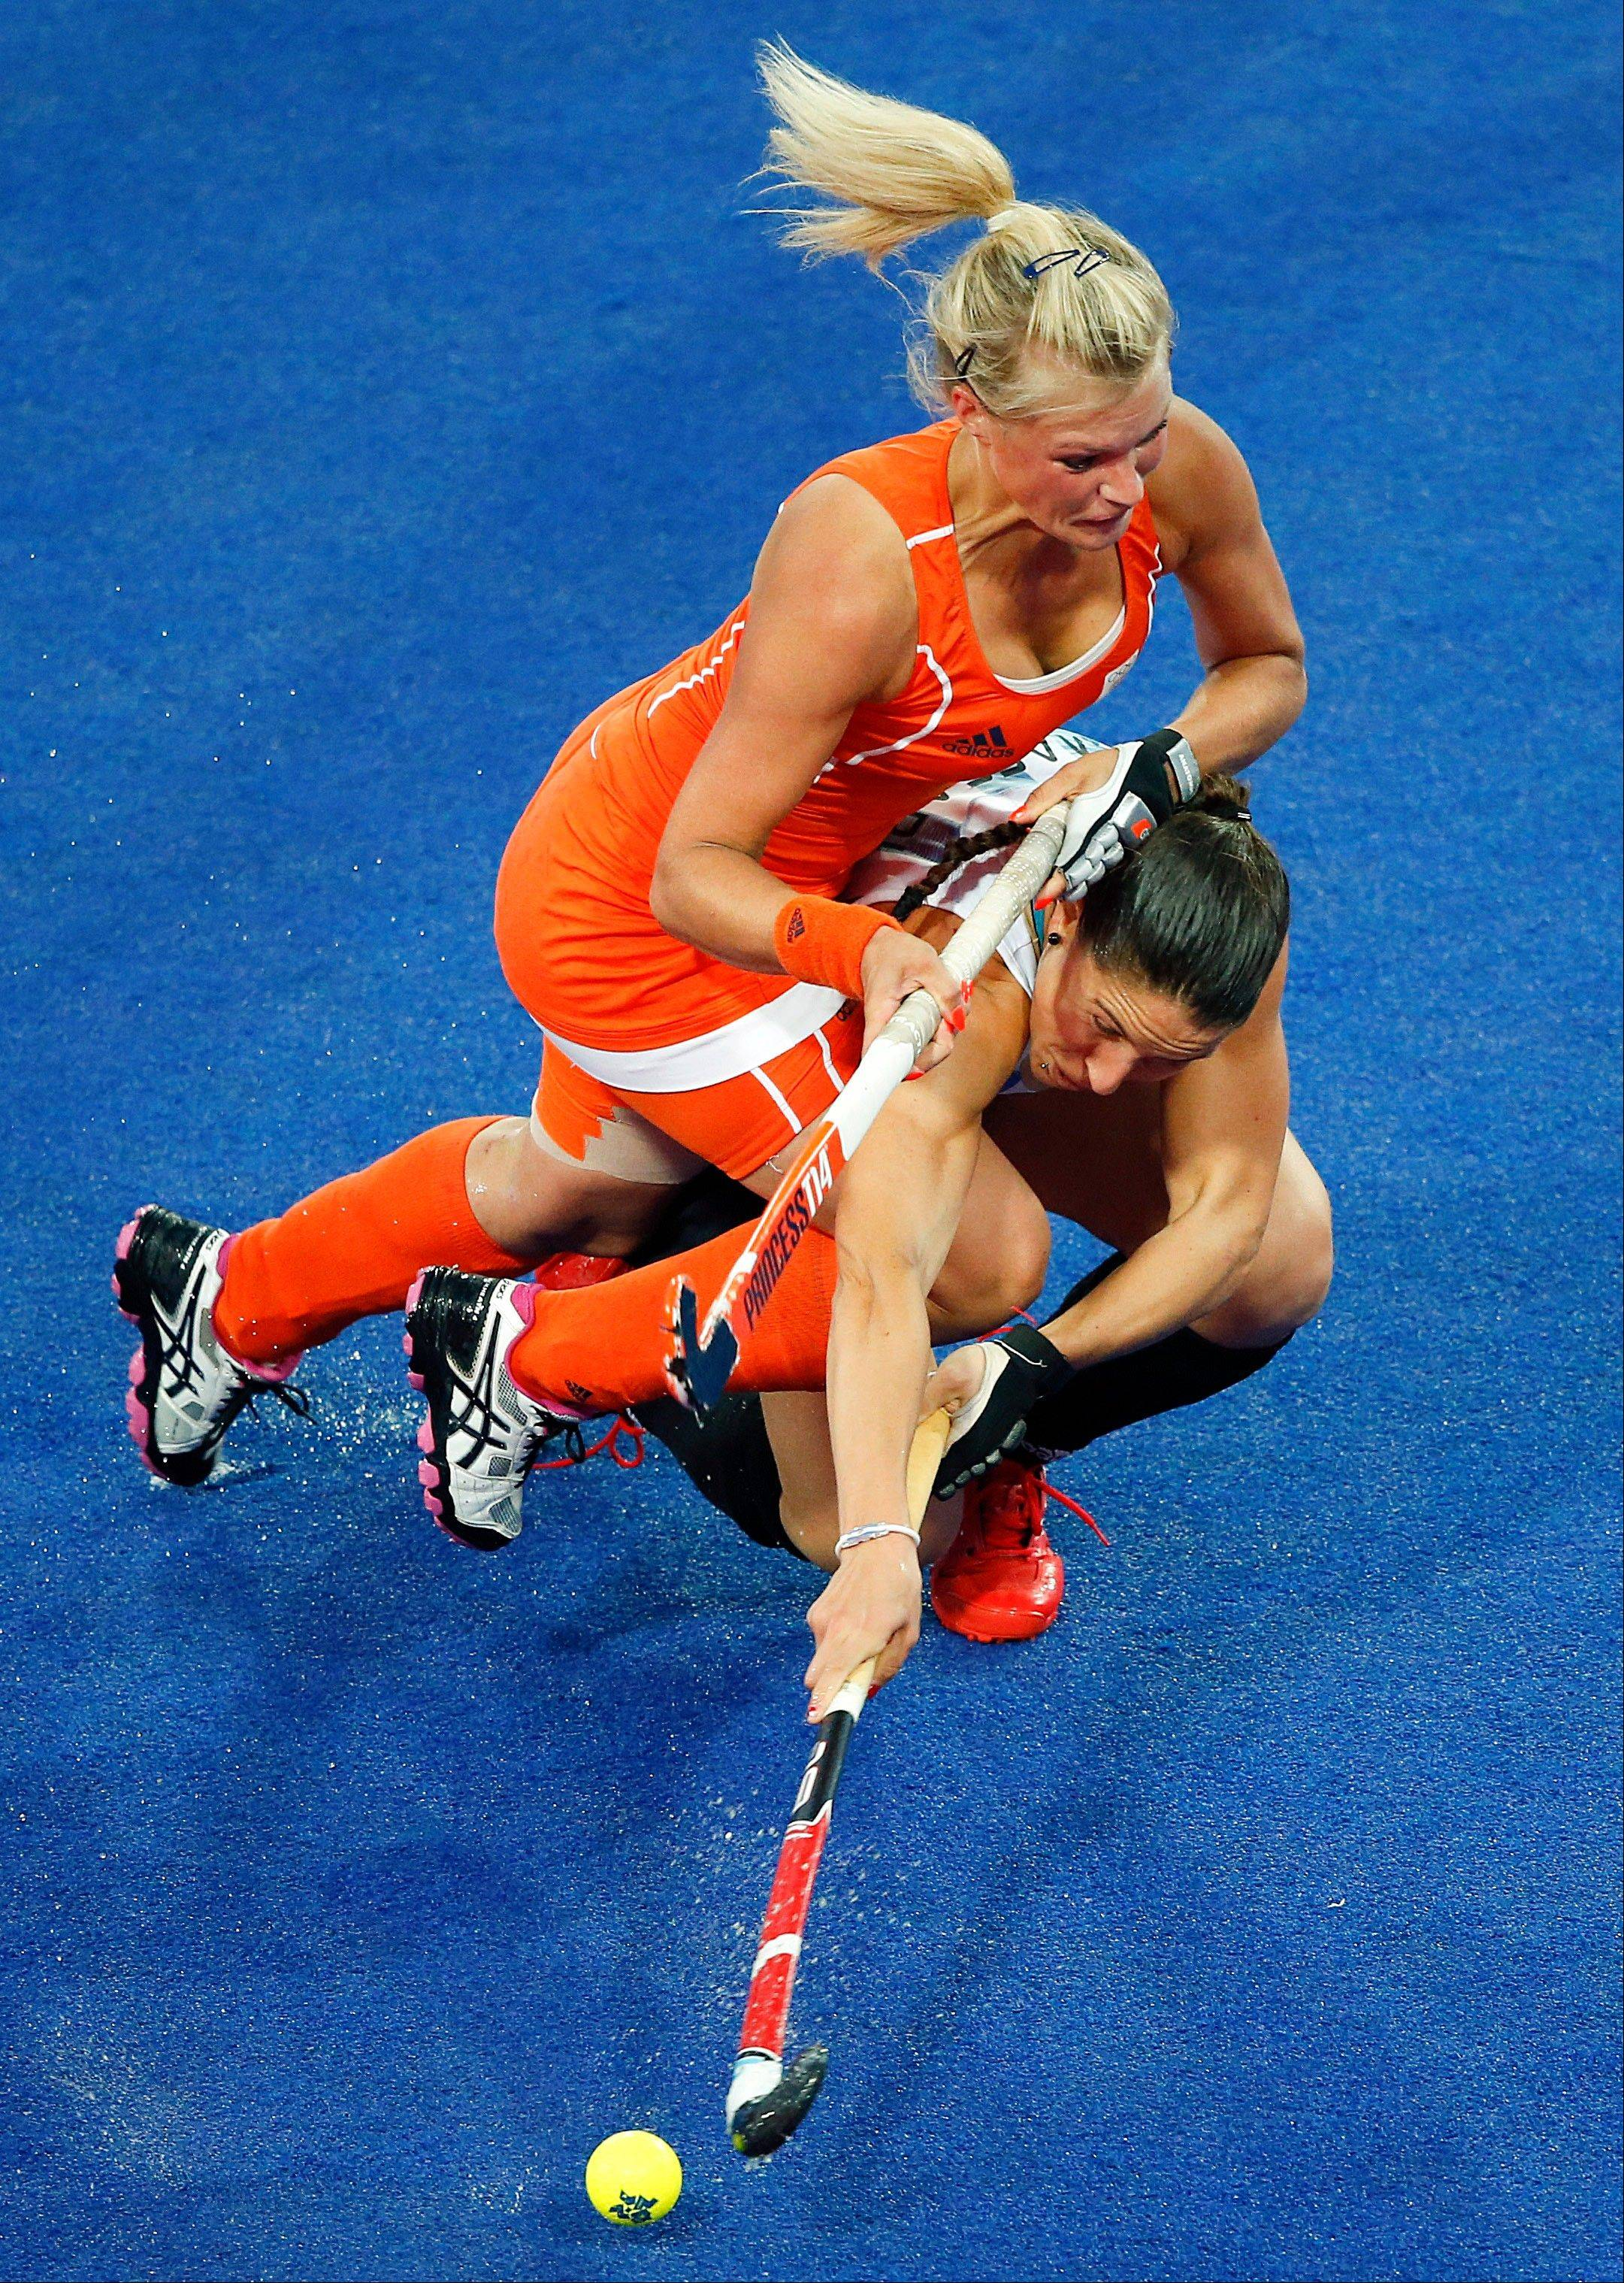 The Netherlands' Sophie Polkamp, top, and Argentina's Sofia Maccari fight for the ball during a women's hockey gold medal match at the 2012 Summer Olympics, London, Friday, Aug. 10, 2012.